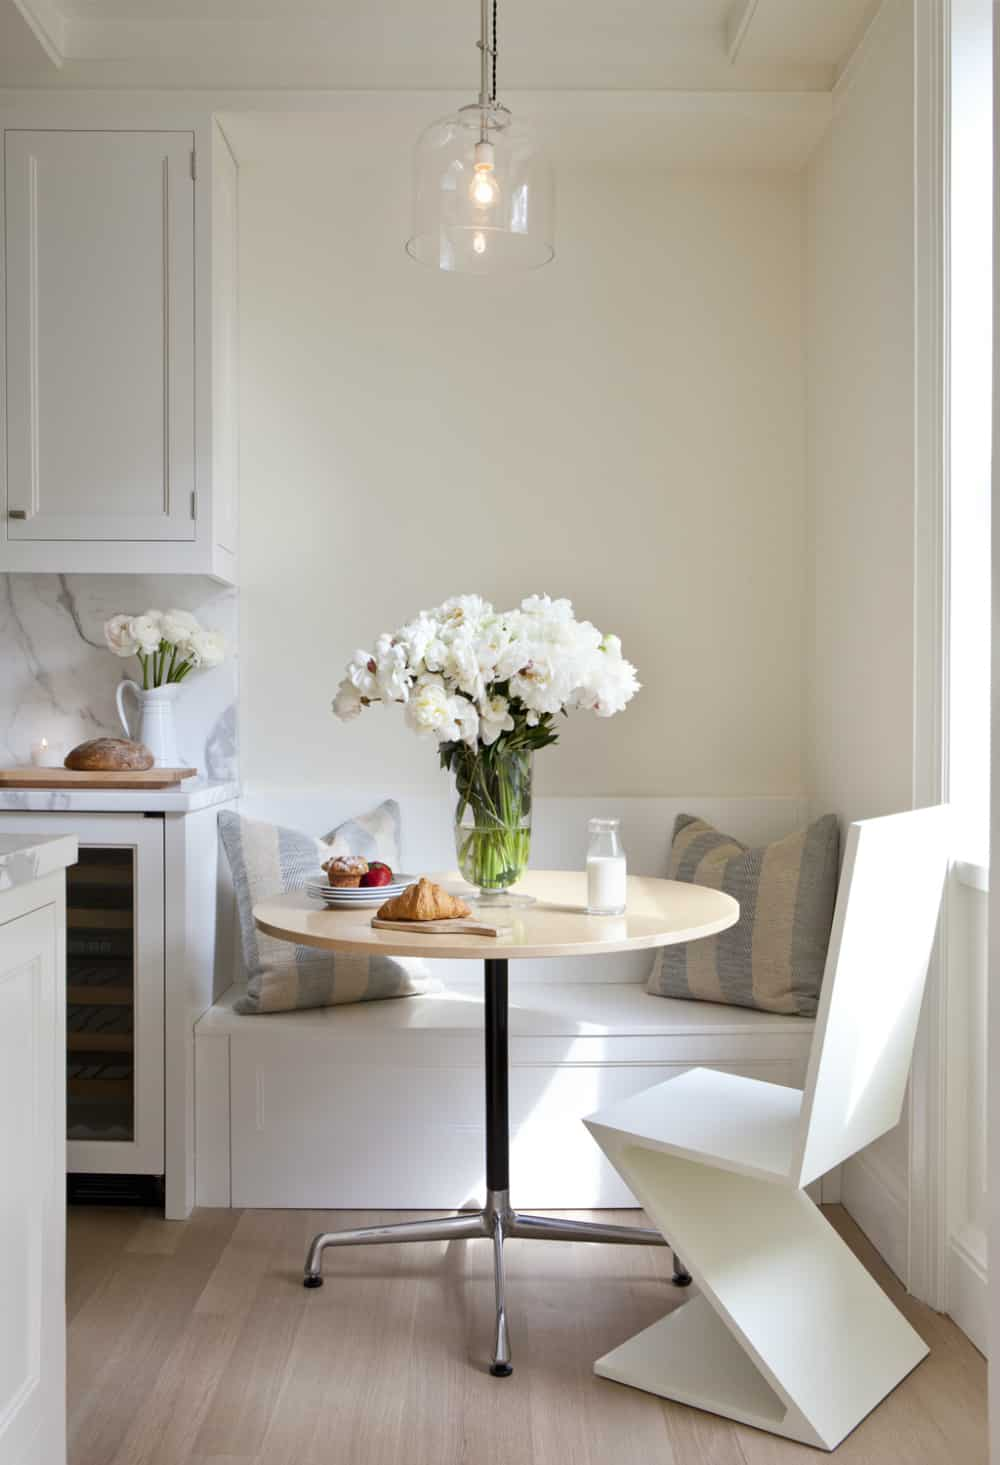 Simple but sweet breakfast area